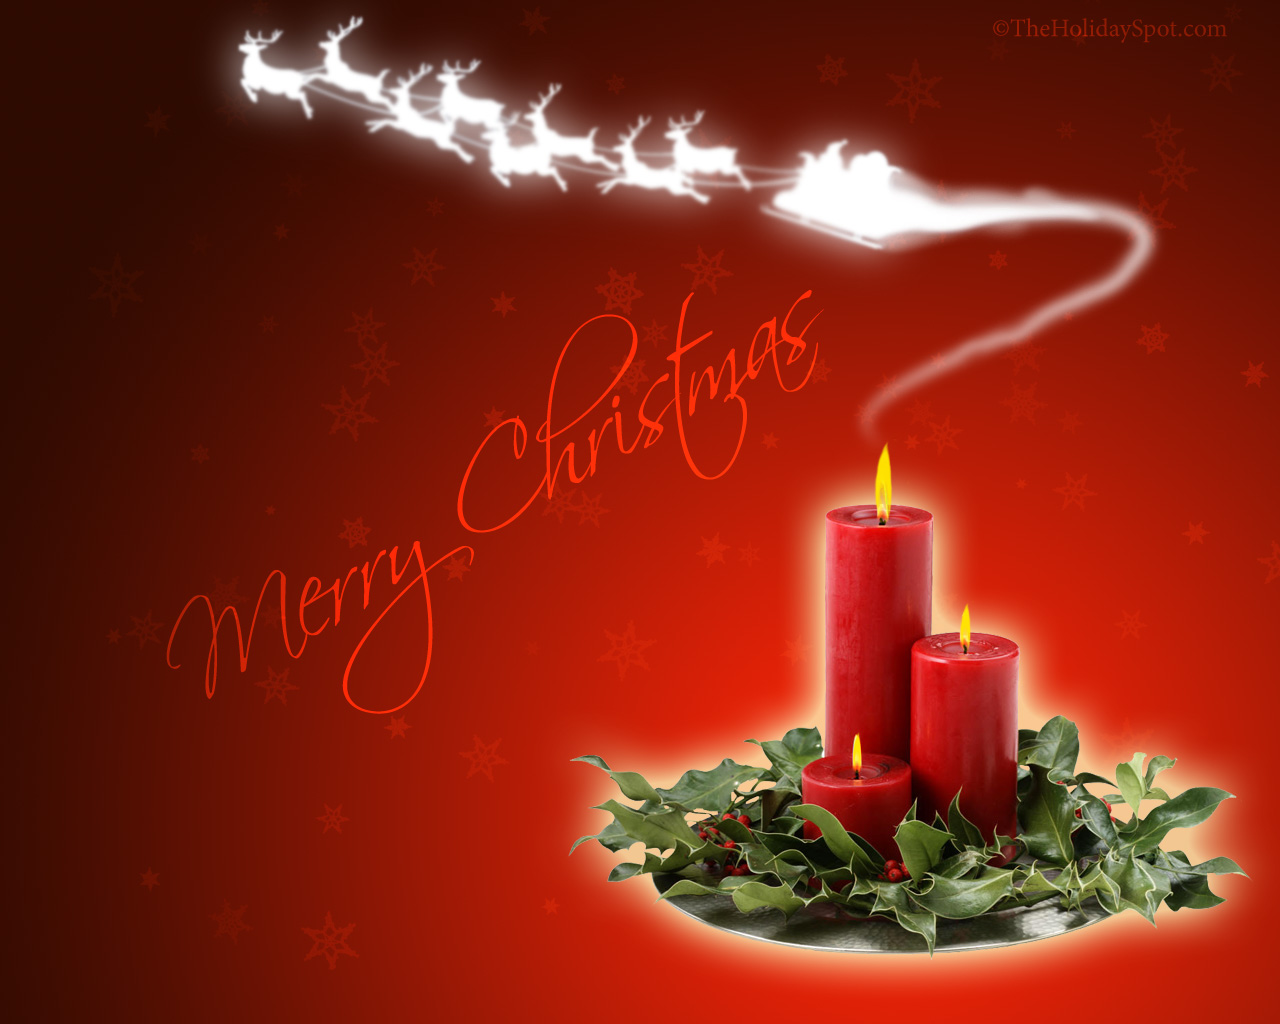 Christmas Wallpapers   High quality Merry Christmas wallpaper 1280x1024